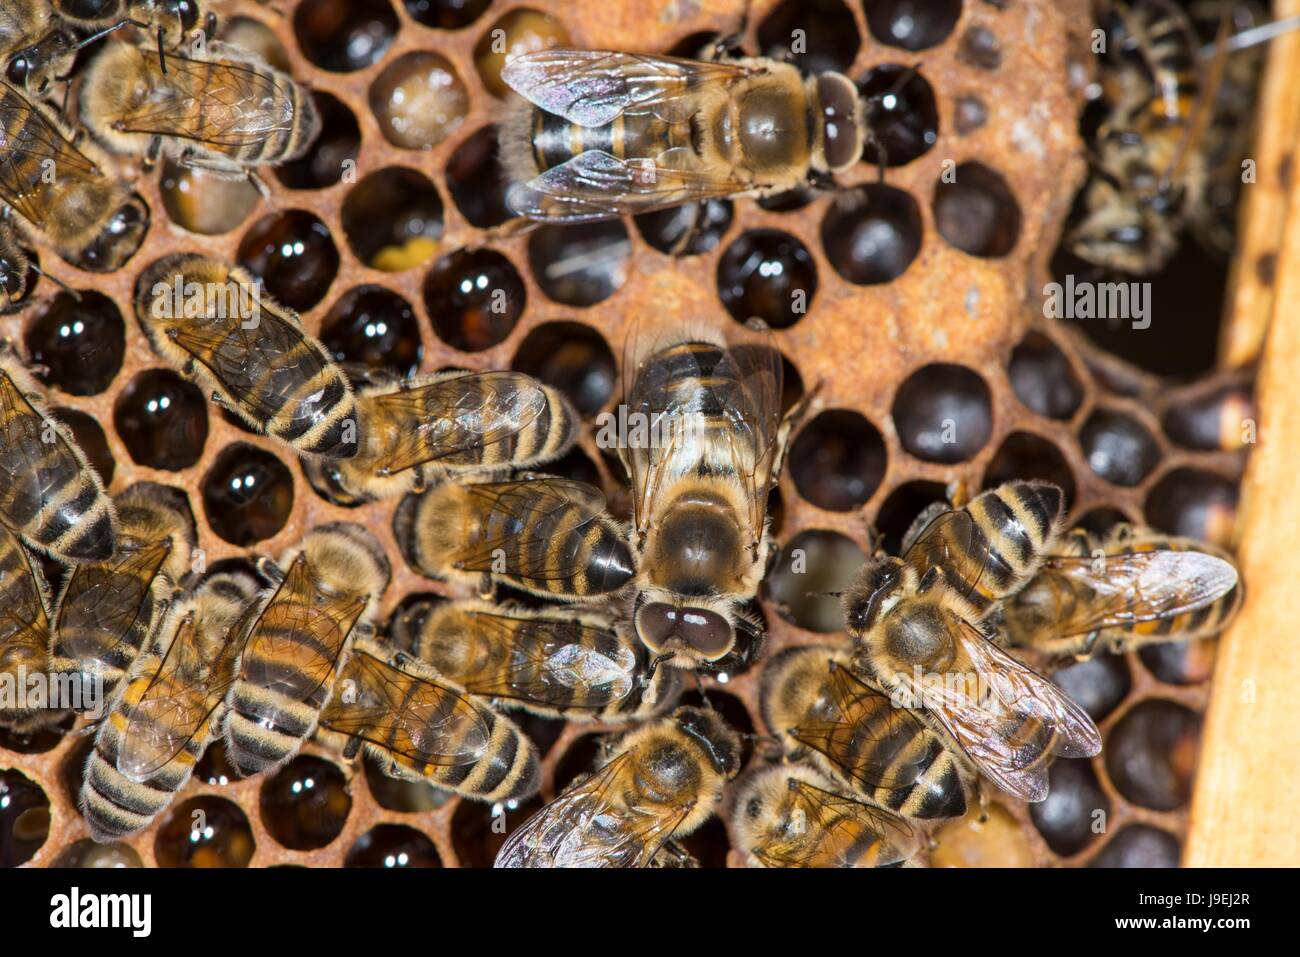 Honey Bee Colony Showing Female Worker Bees And Drones On